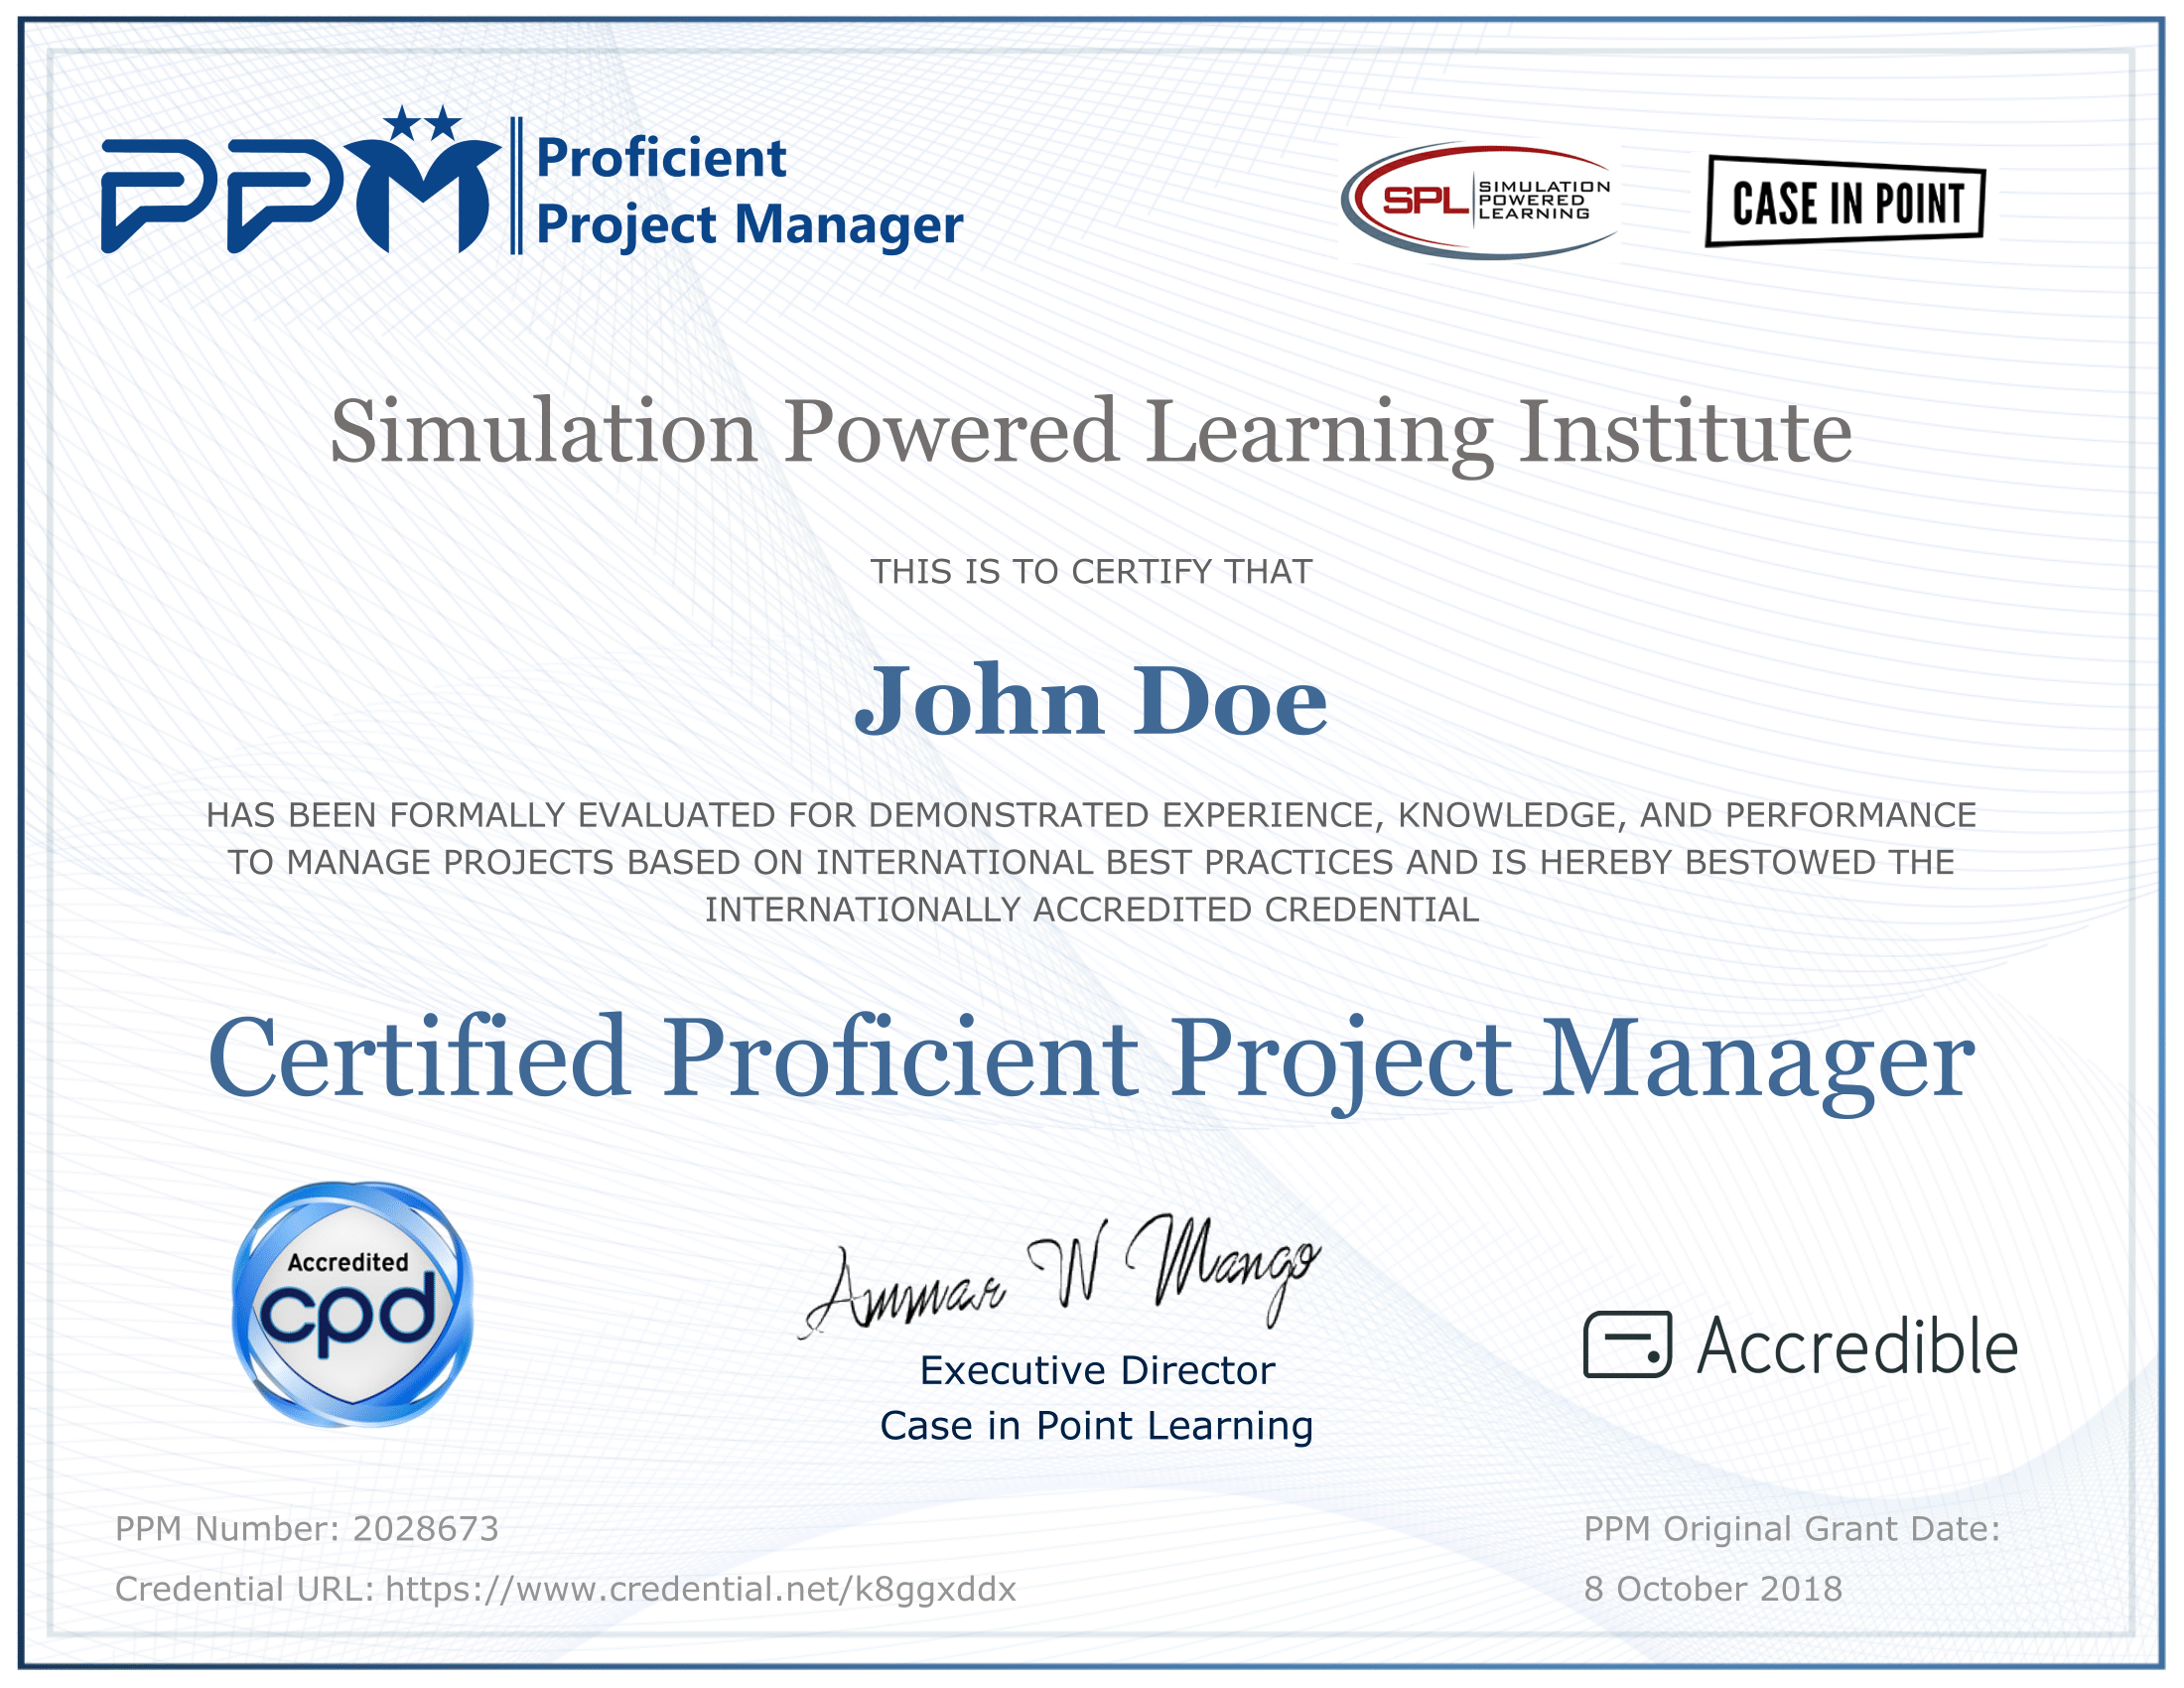 Get Certified As A Proficient Project Manager Ppm Online